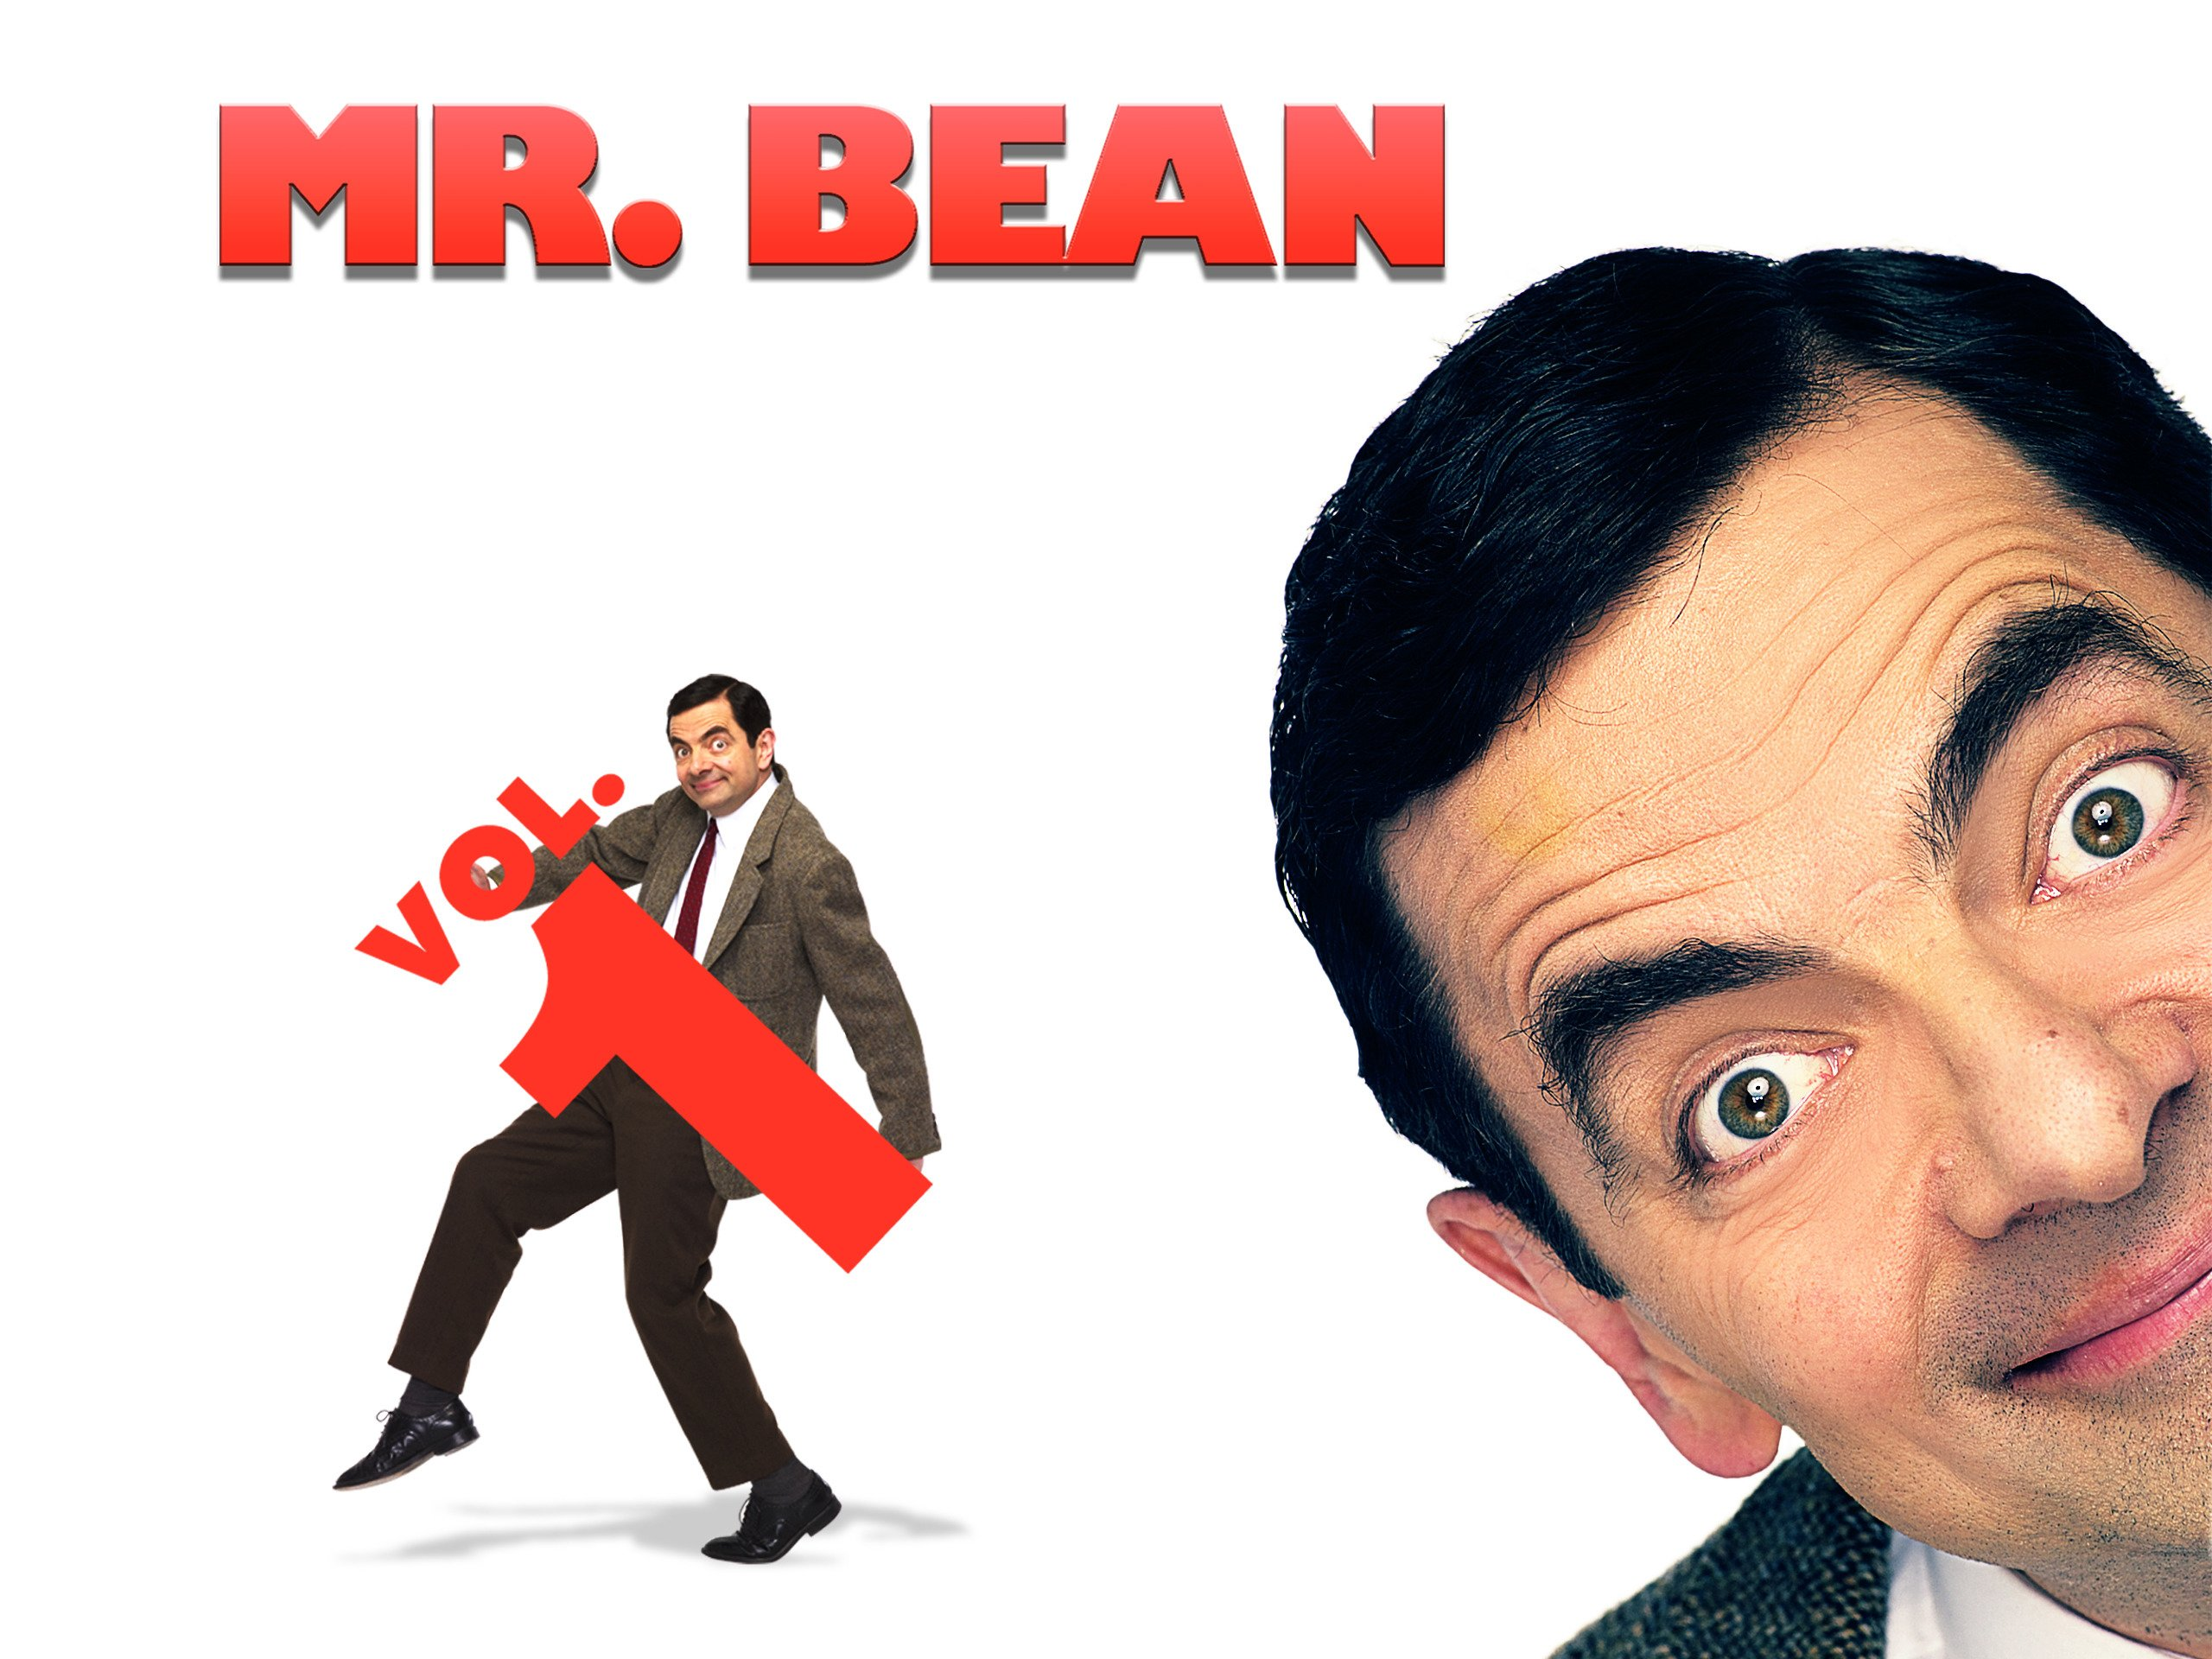 Mr bean watch online now with amazon instant video peter bennett mr bean watch online now with amazon instant video peter bennett jones sue vertue john howard davies amazon solutioingenieria Image collections